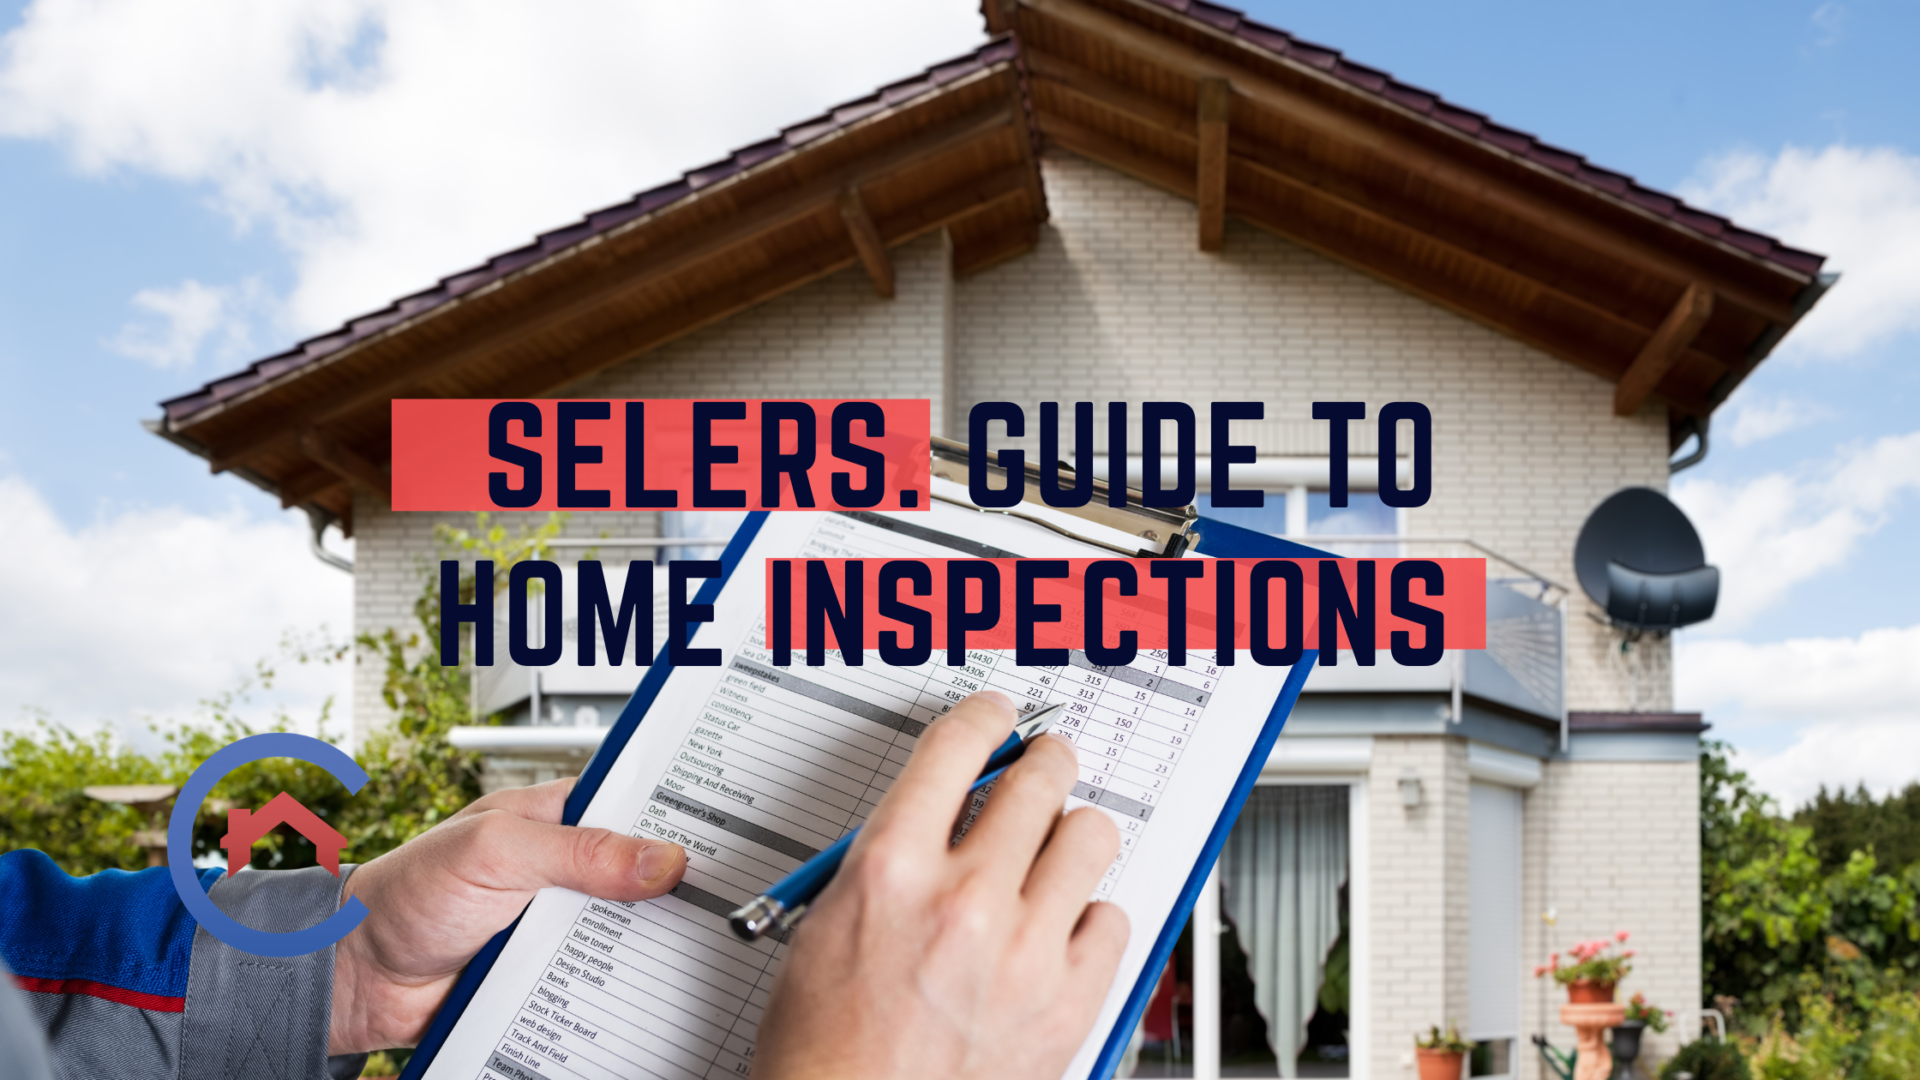 Complete Sellers Guide to Home Inspections!